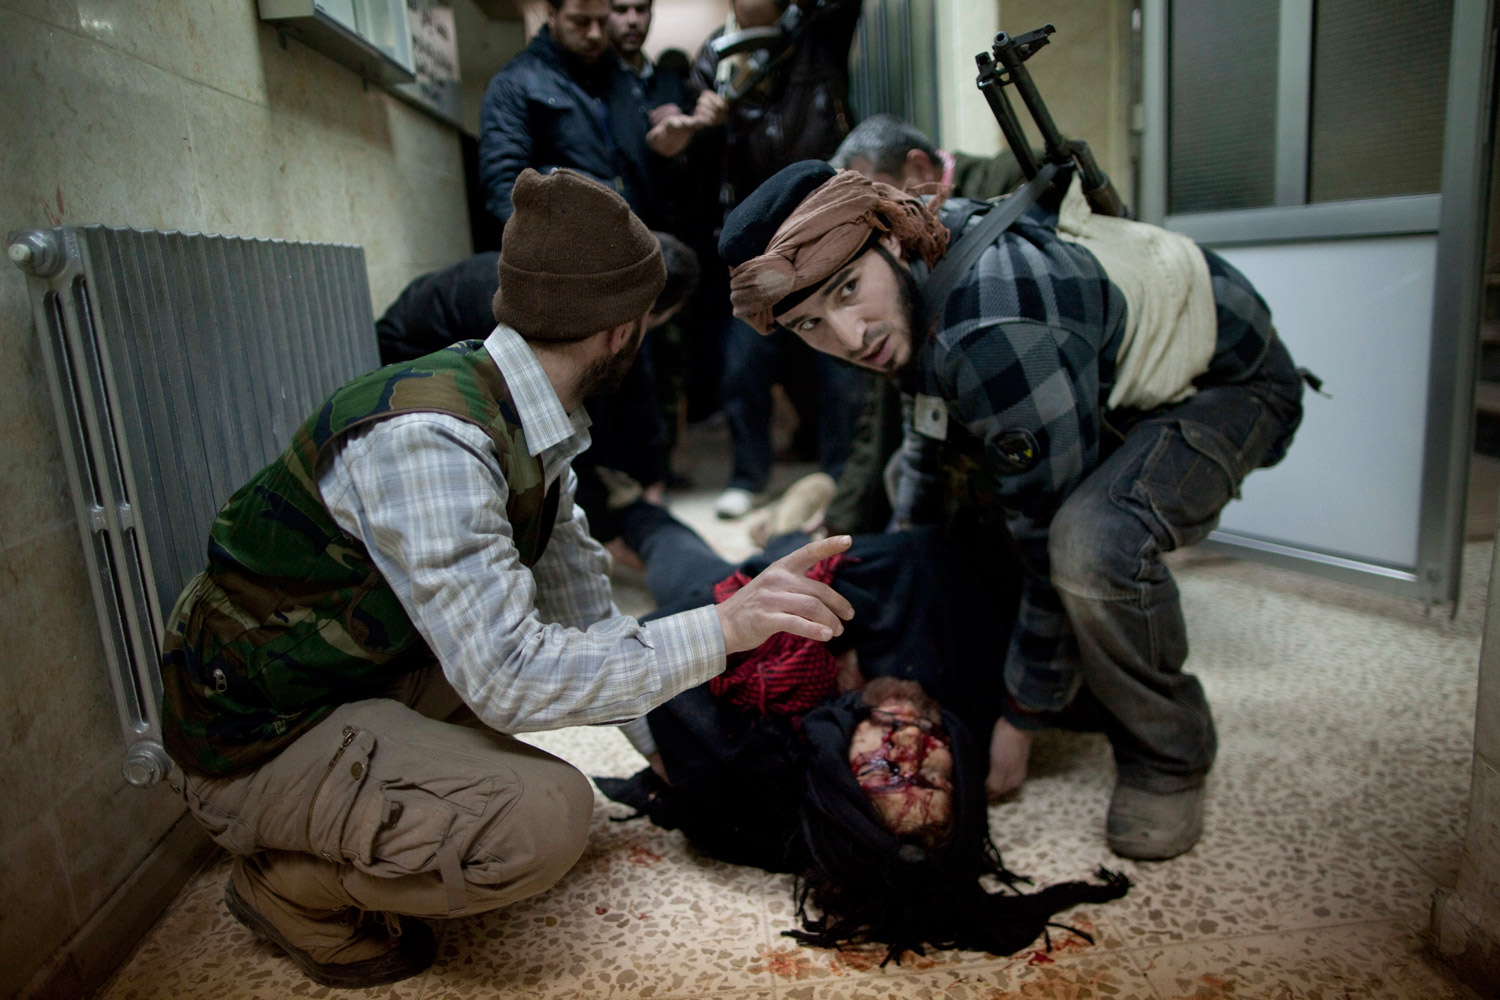 March 11, 2012. Syrian rebels carry the dead body of a comrade to a morgue after heavy fighting with Syrian government forces in Idlib, north Syria.